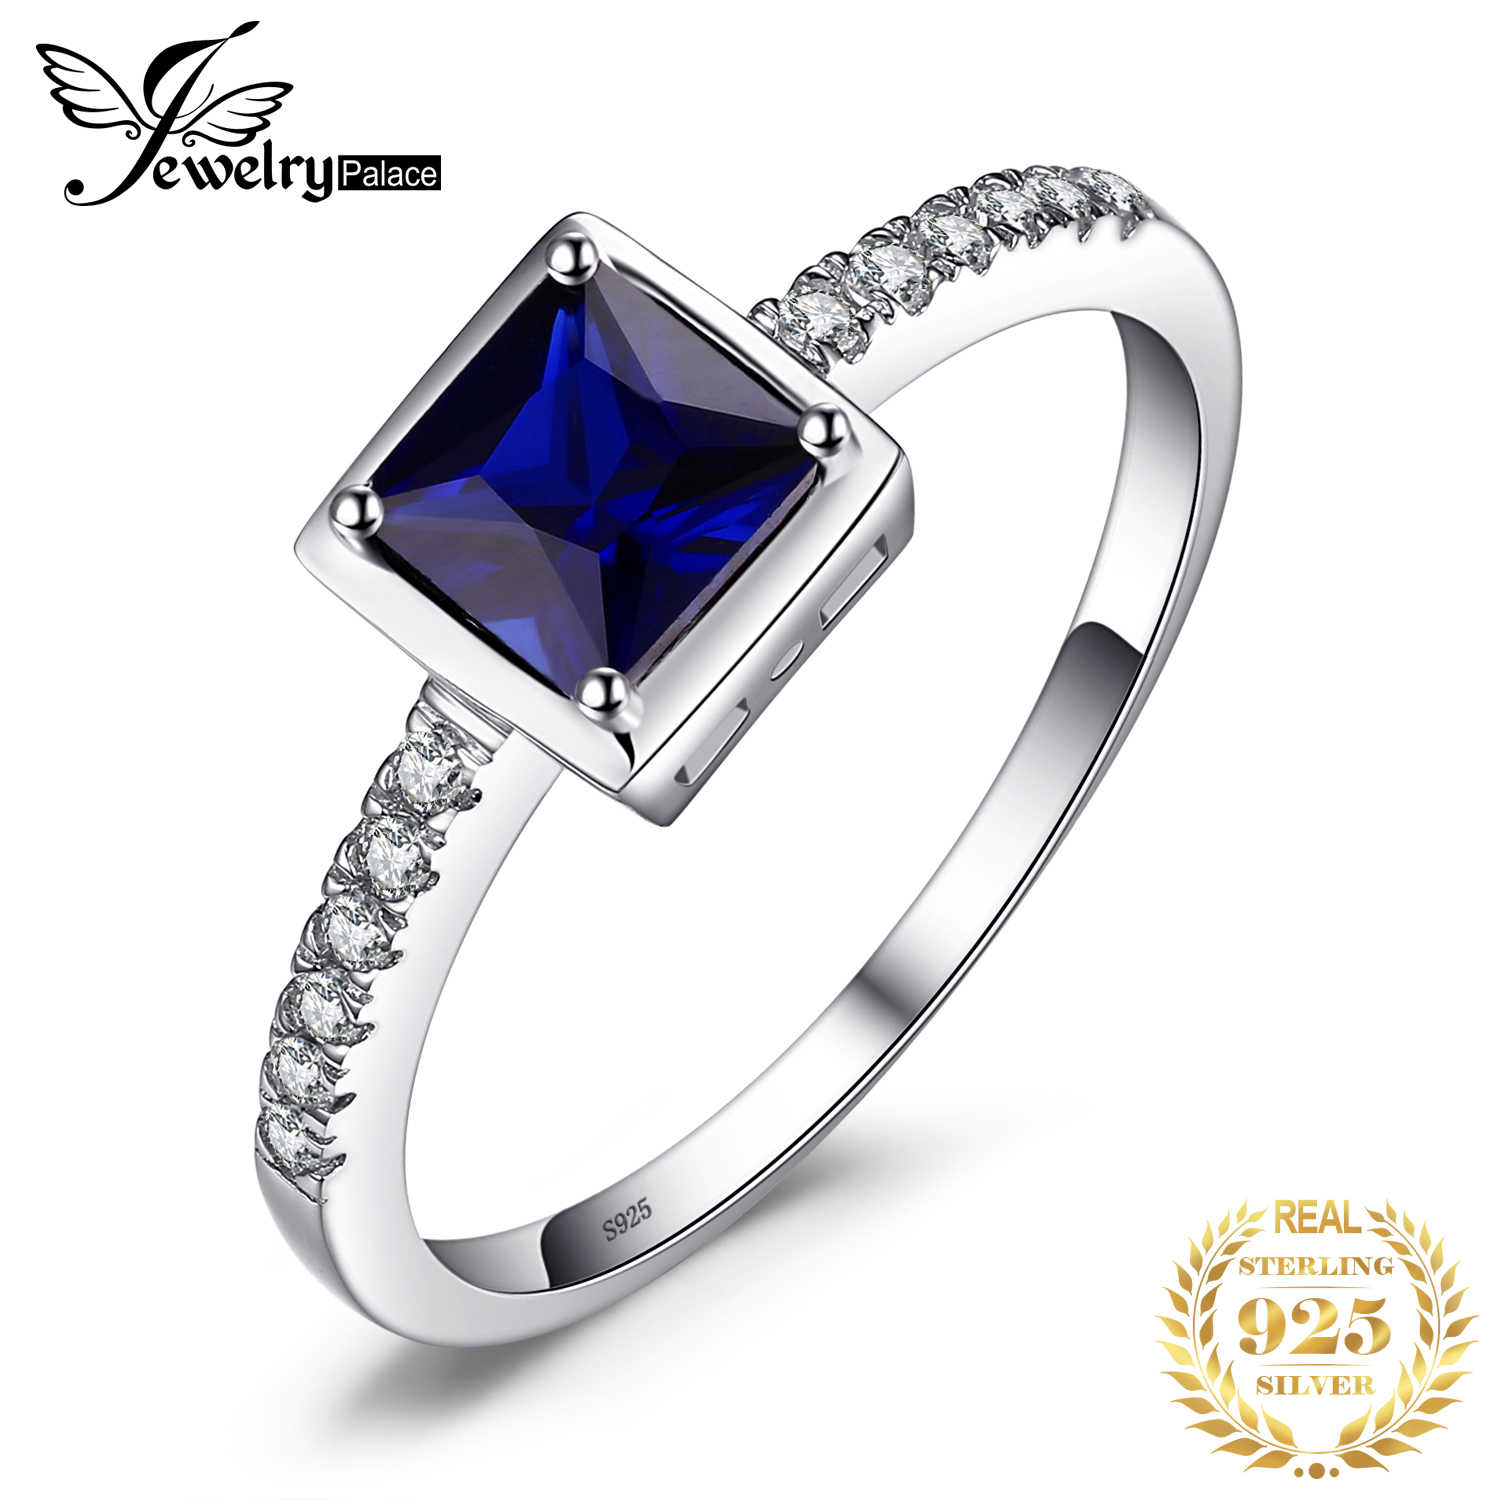 JewelryPalace Square 0.9ct Created Blue Sapphire Solitaire Ring 925 Sterling Silver Jewelry for Fashion Women Fine Jewelry